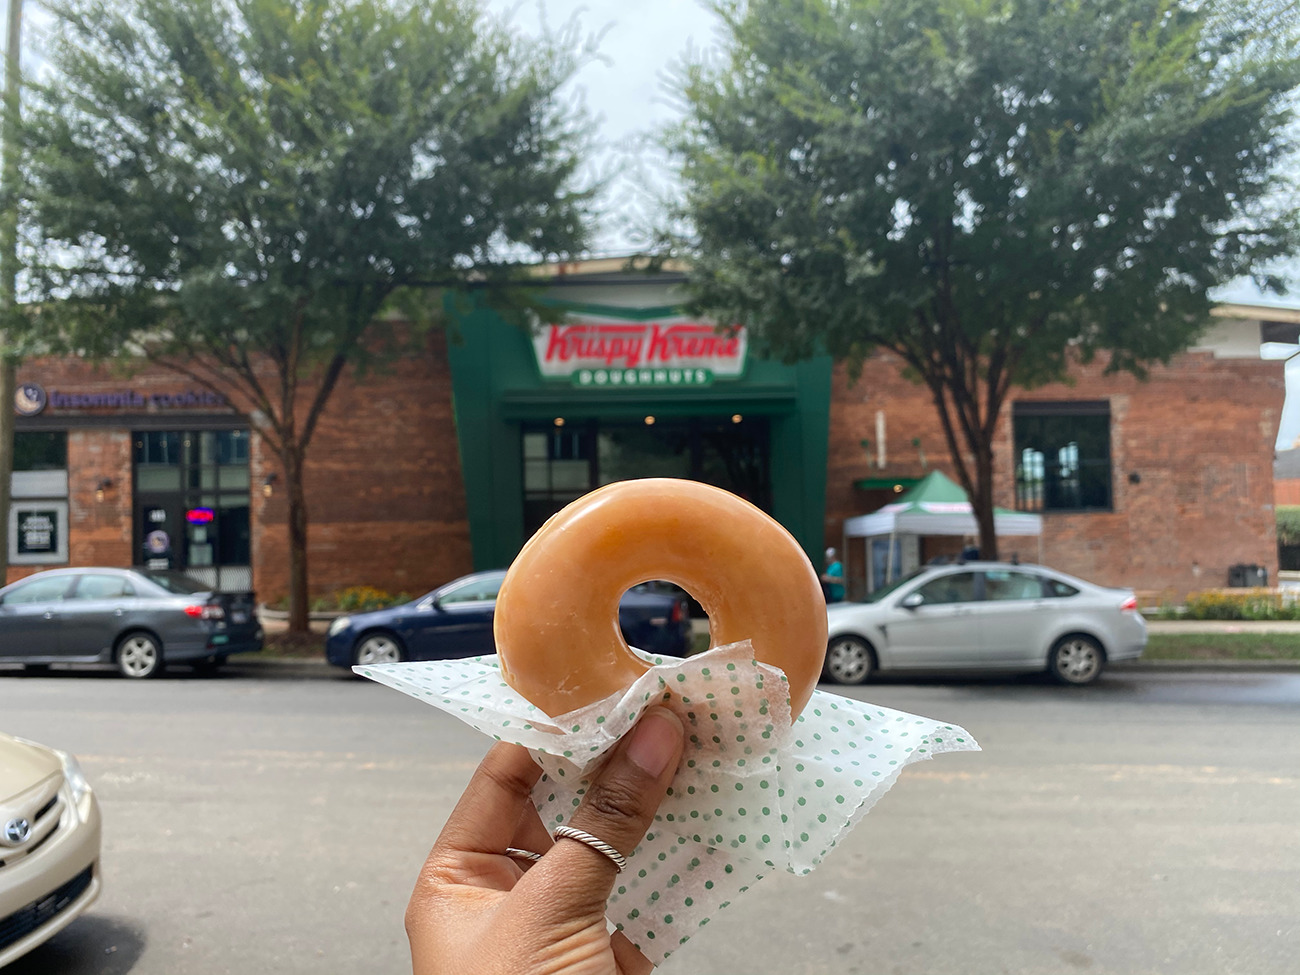 Krispy Kreme opens today in South End with a 24-hour vending machine